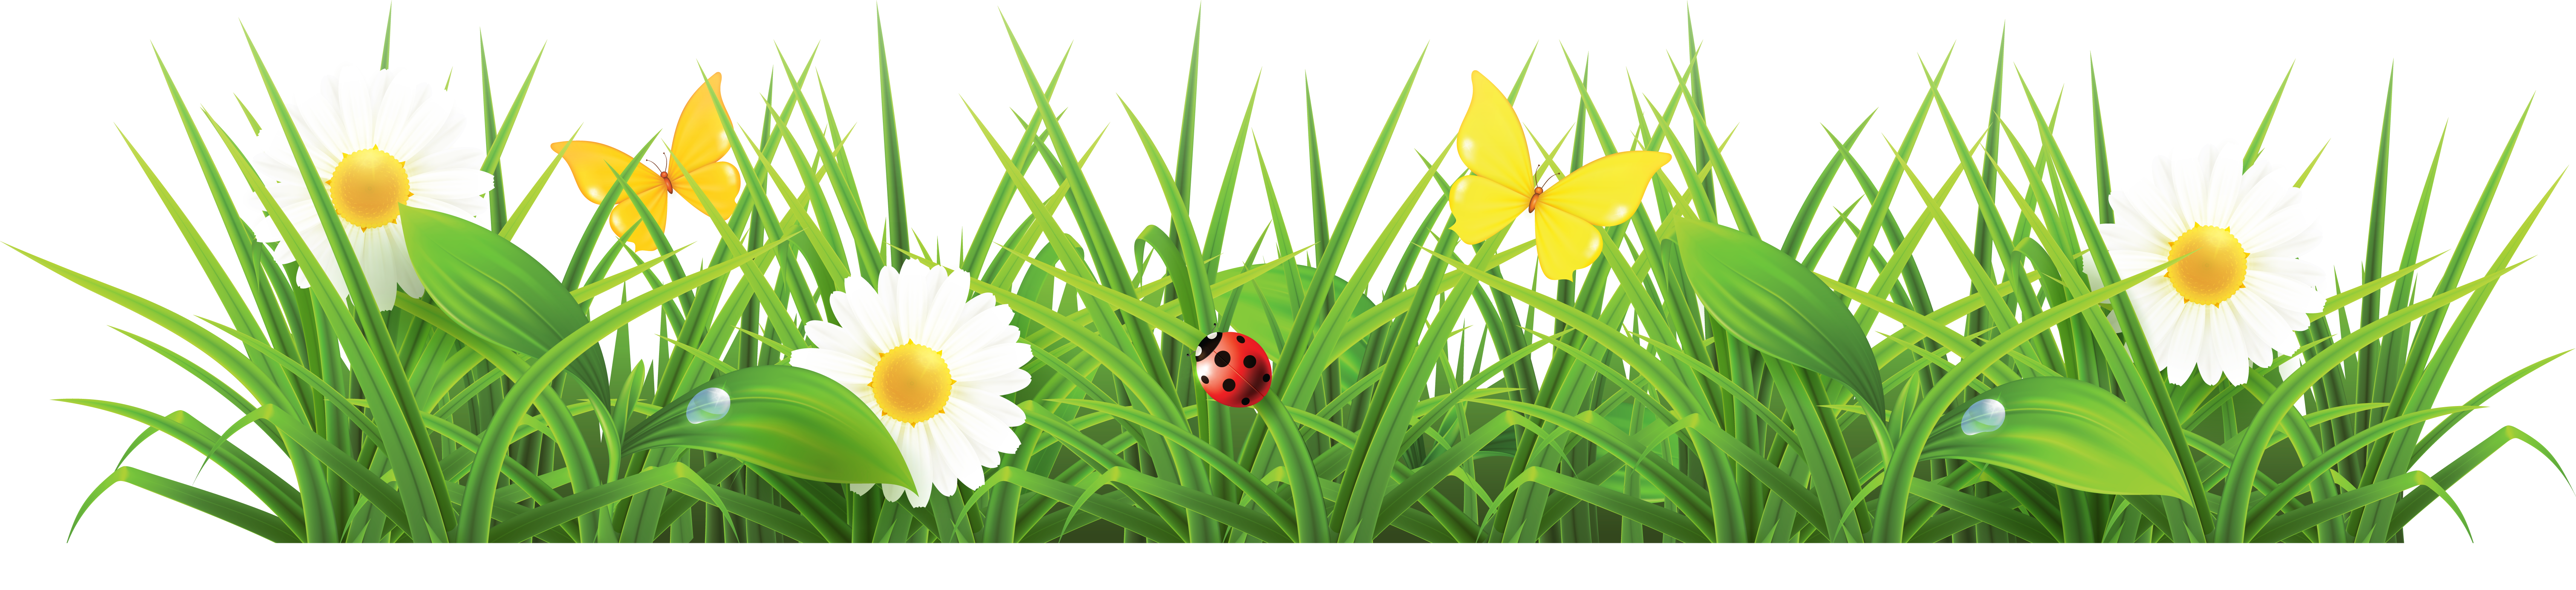 Grass clipart tulip. Free flower cliparts download